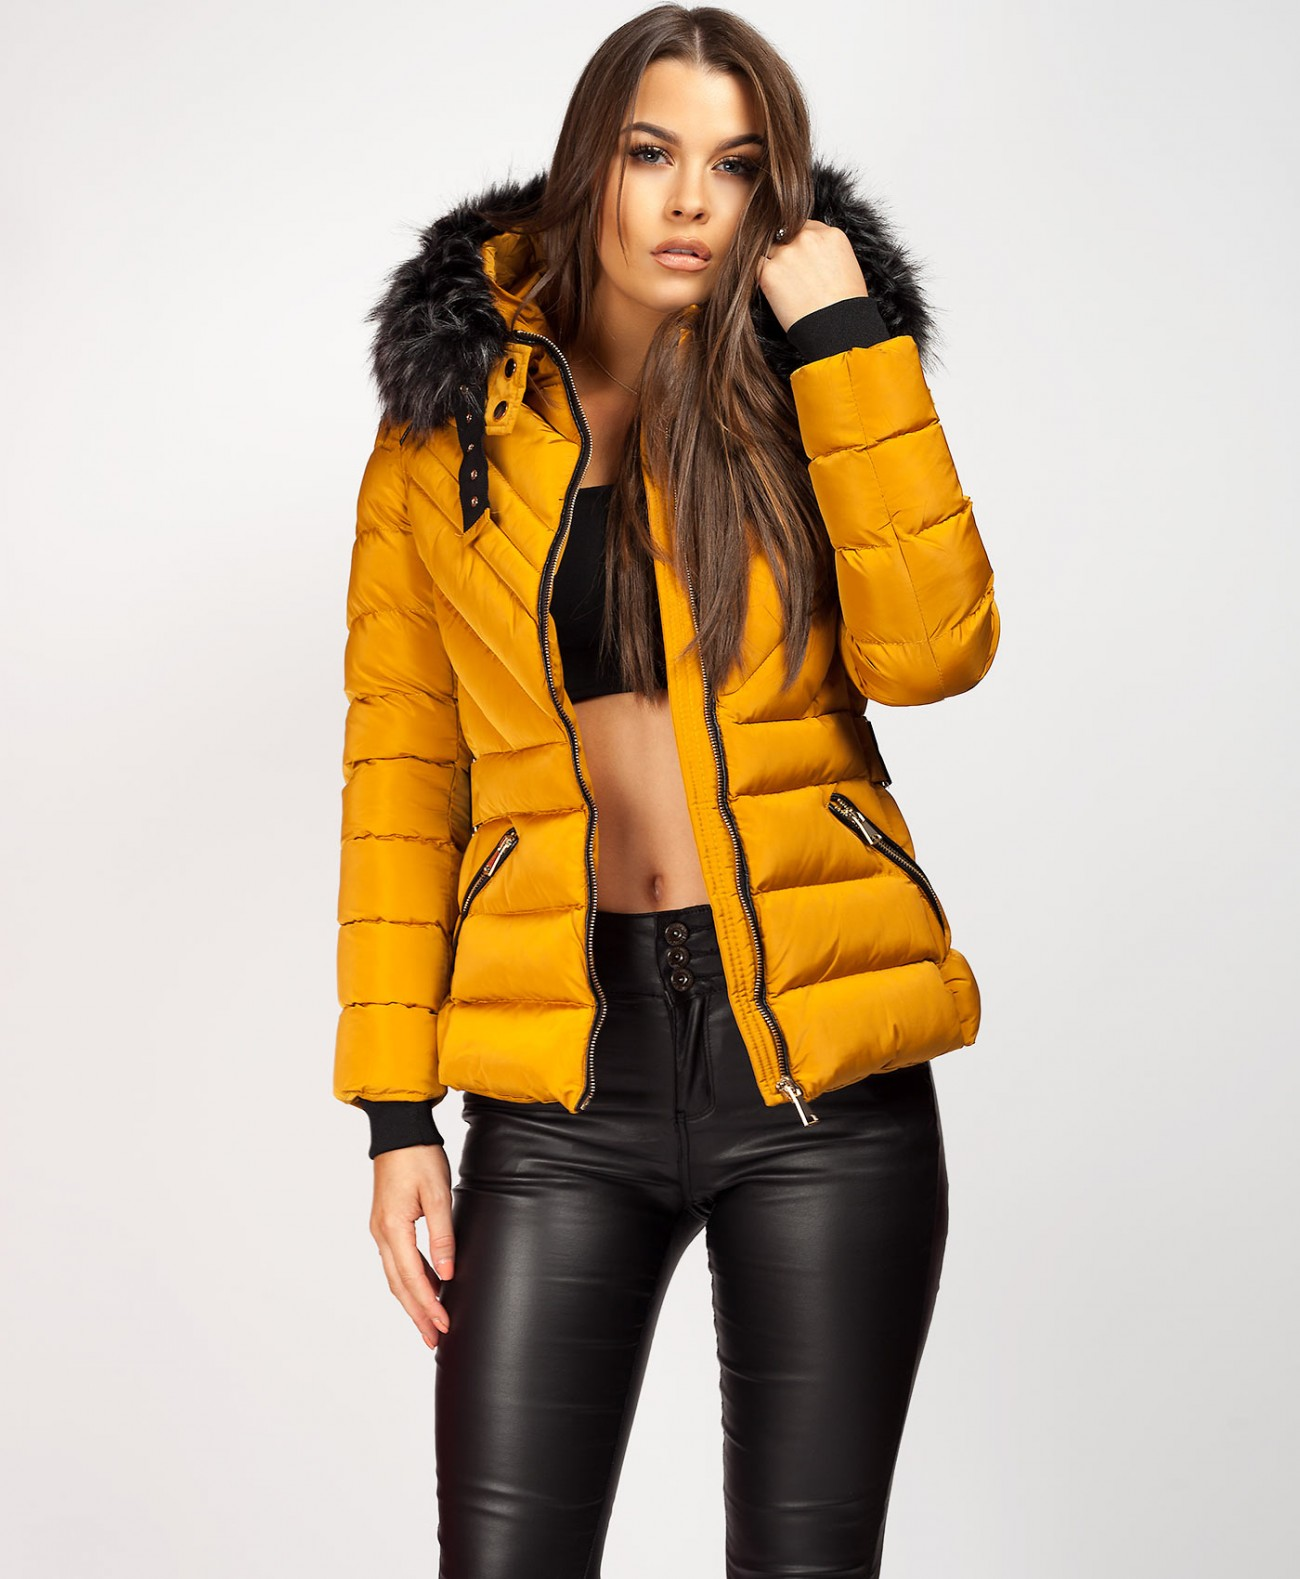 58e0d44cd ... Faux Fur Hood Side Buckle Jacket.  Mustard-Padded-Side-Buckle-Chevron-Quilted-Puffer-Jacket-